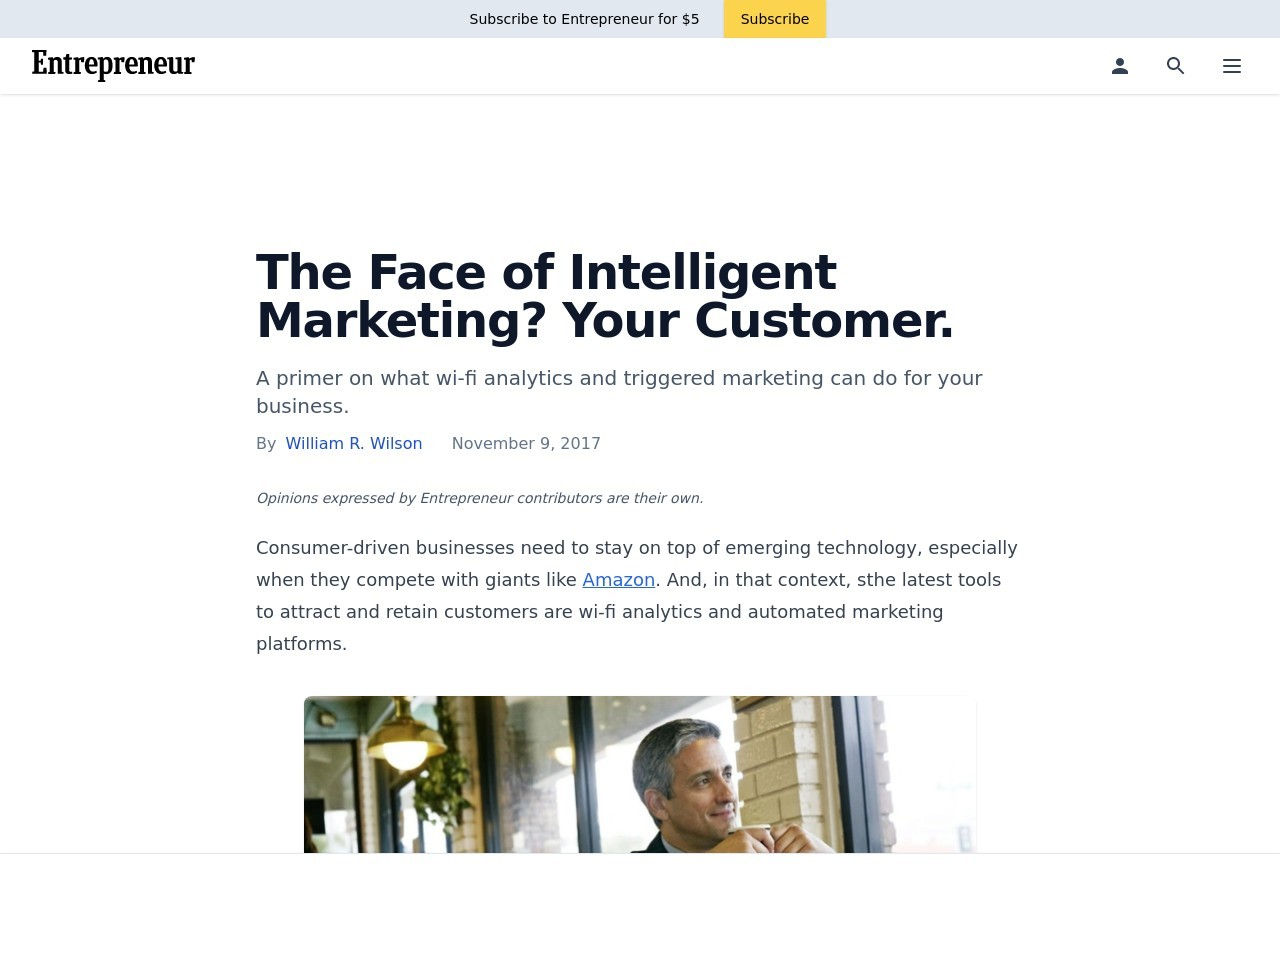 The Face of Intelligent Marketing? Your Customer.